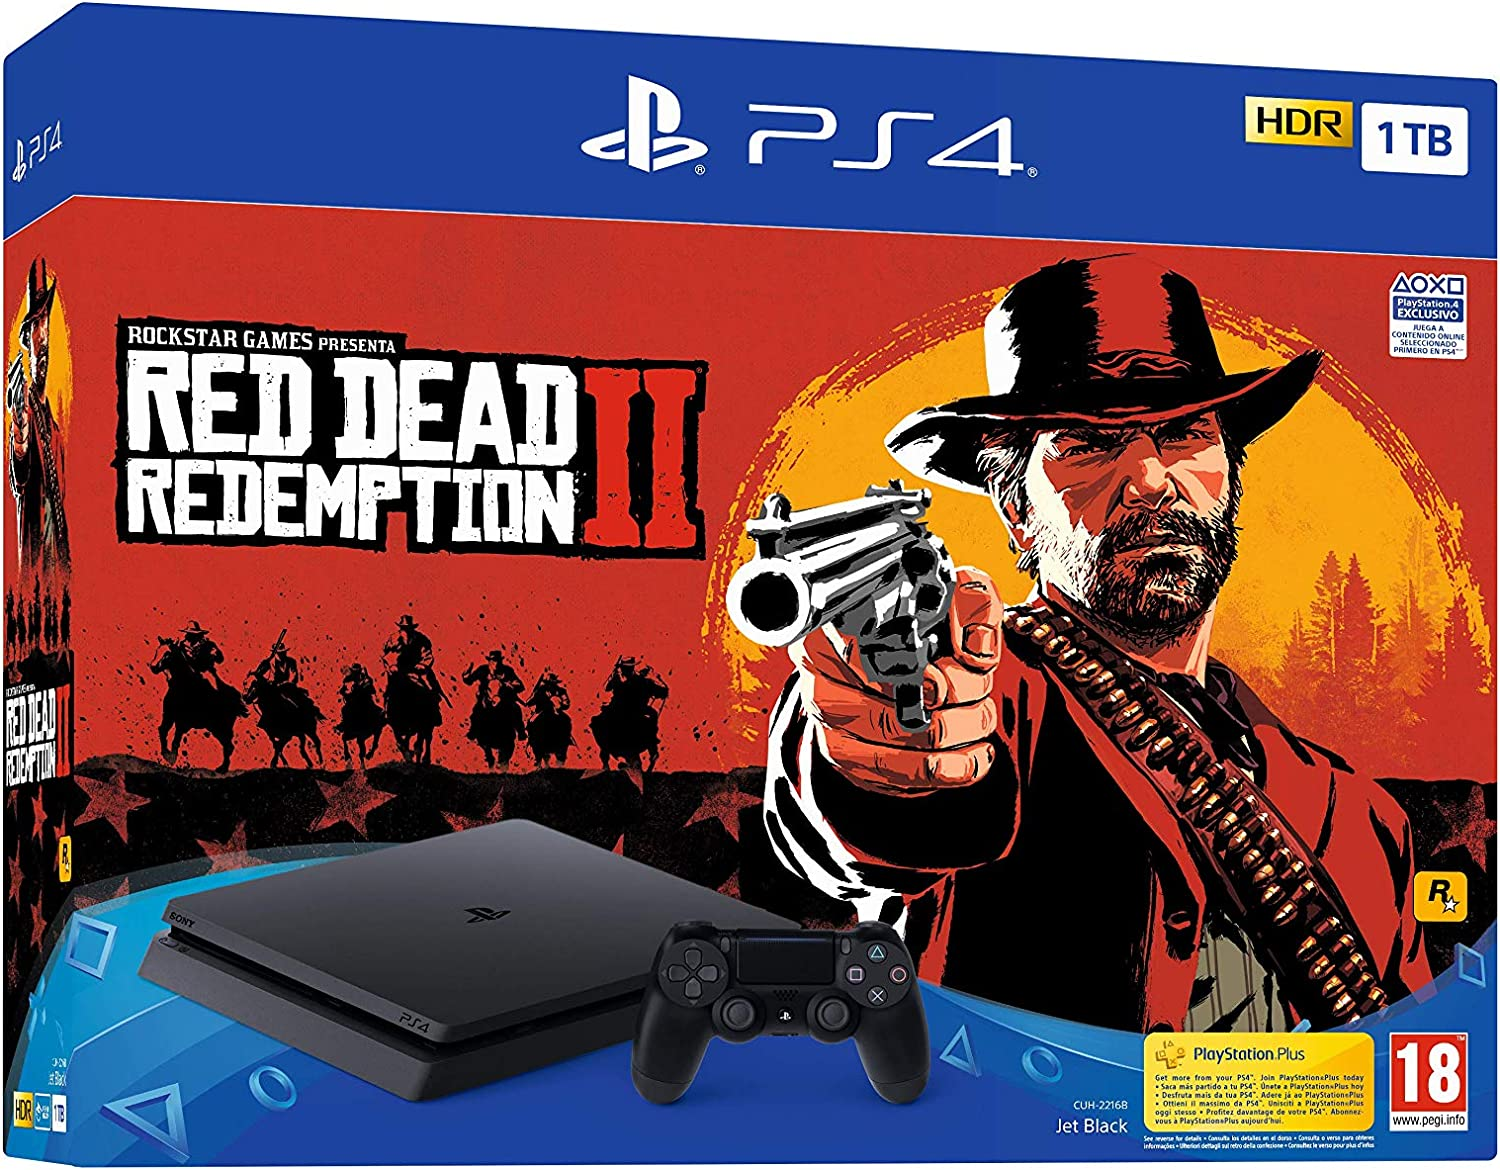 PlayStation 4 (PS4) - Consola de 1 TB + Red Dead Redemption II: Sony: Amazon.es: Videojuegos